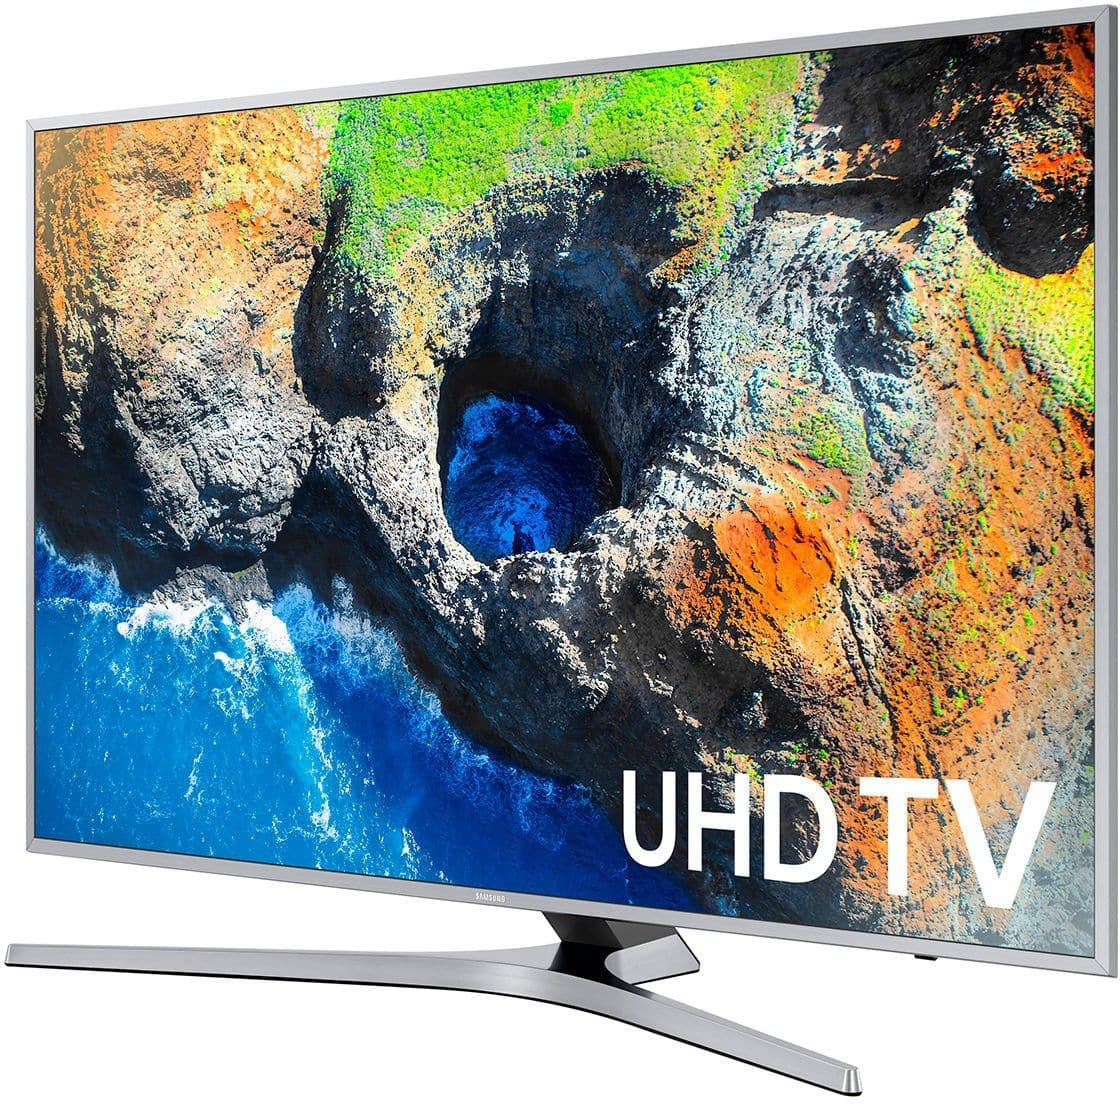 55 Inch Samsung Mu7000 for $349 is back again